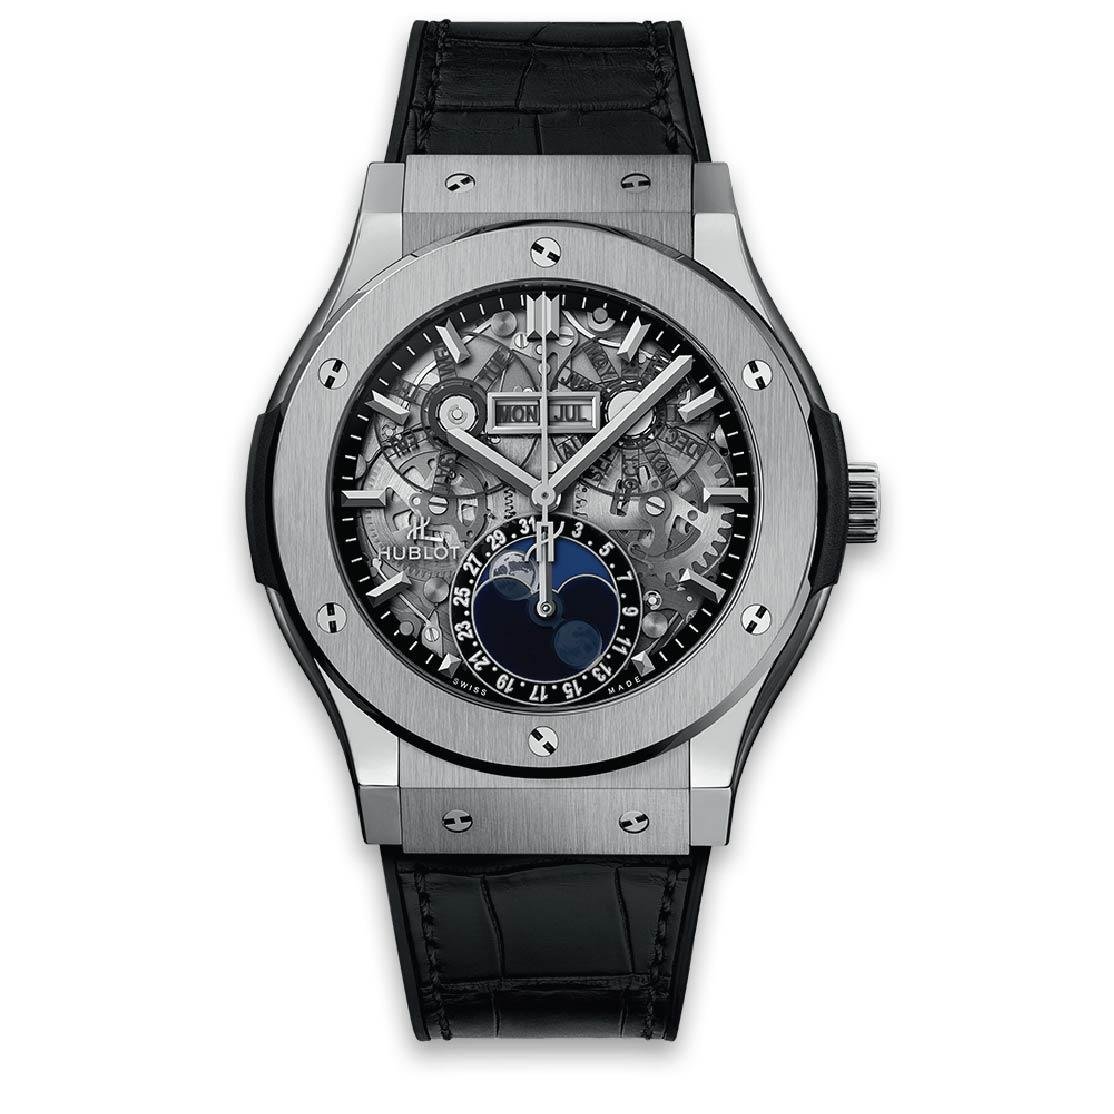 HUBLOT ЧАСЫ CLASSIC FUSION AEROFUSION MOONPHASE TITANIUM 45 mm